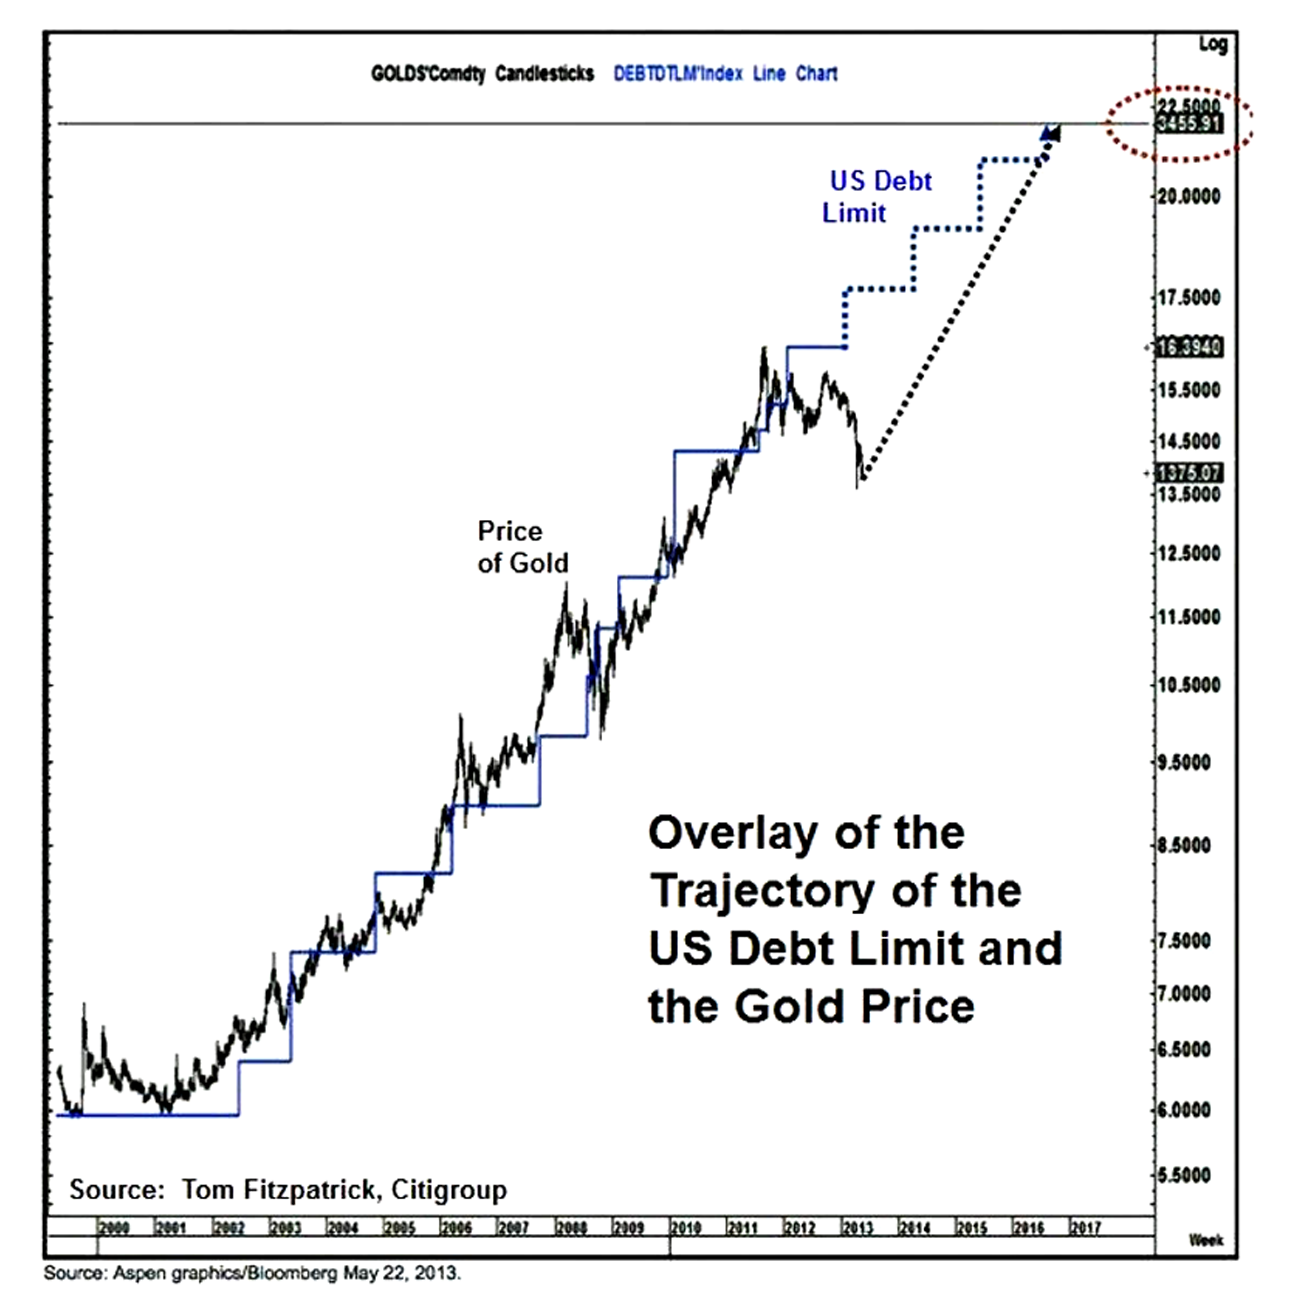 Overlay of the Trajectory of the US Debt Limit and the Gold Price